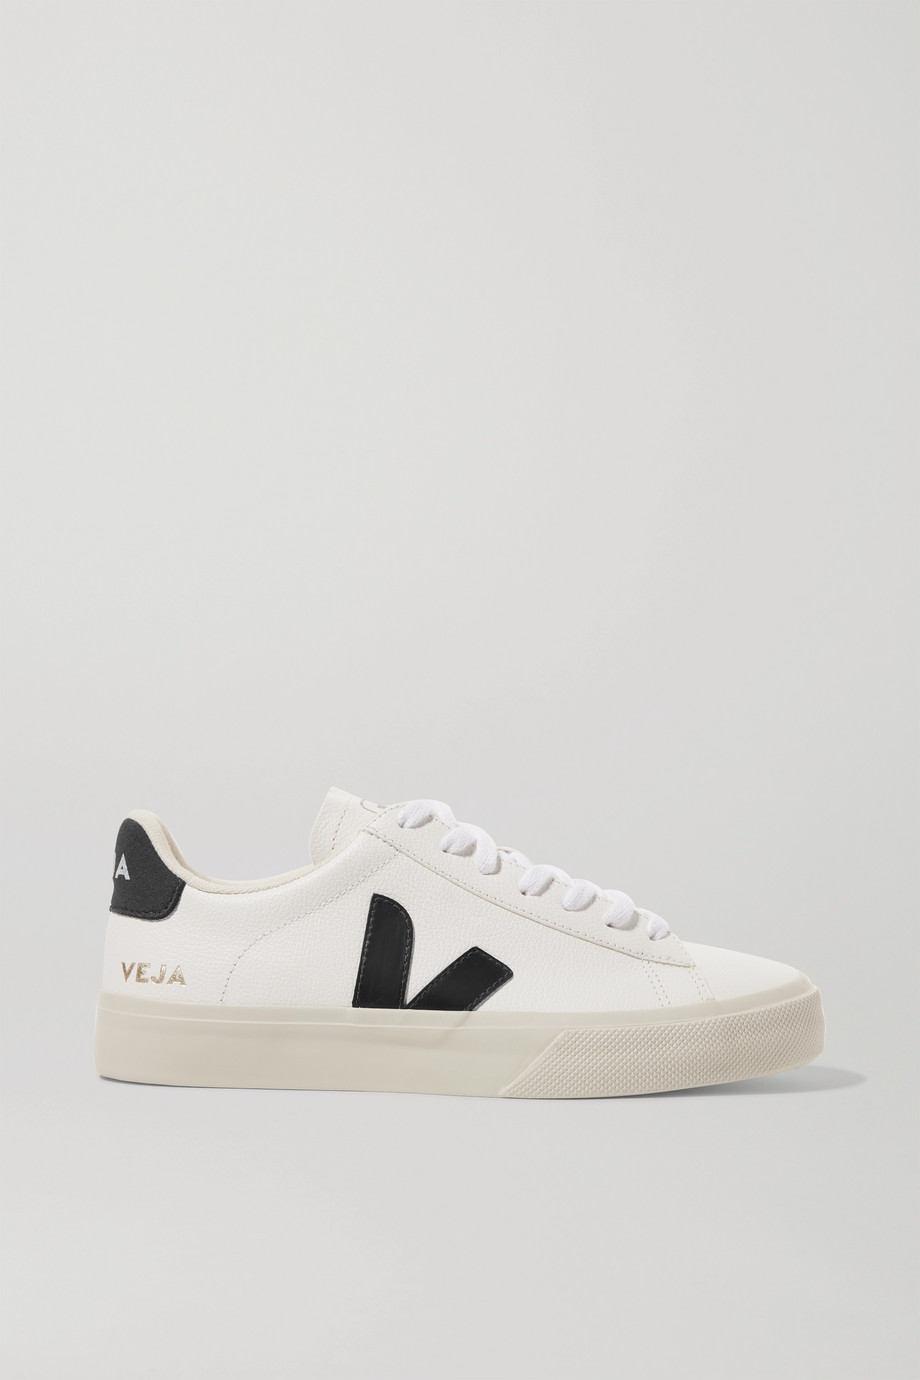 Veja Campo textured-leather sneakers